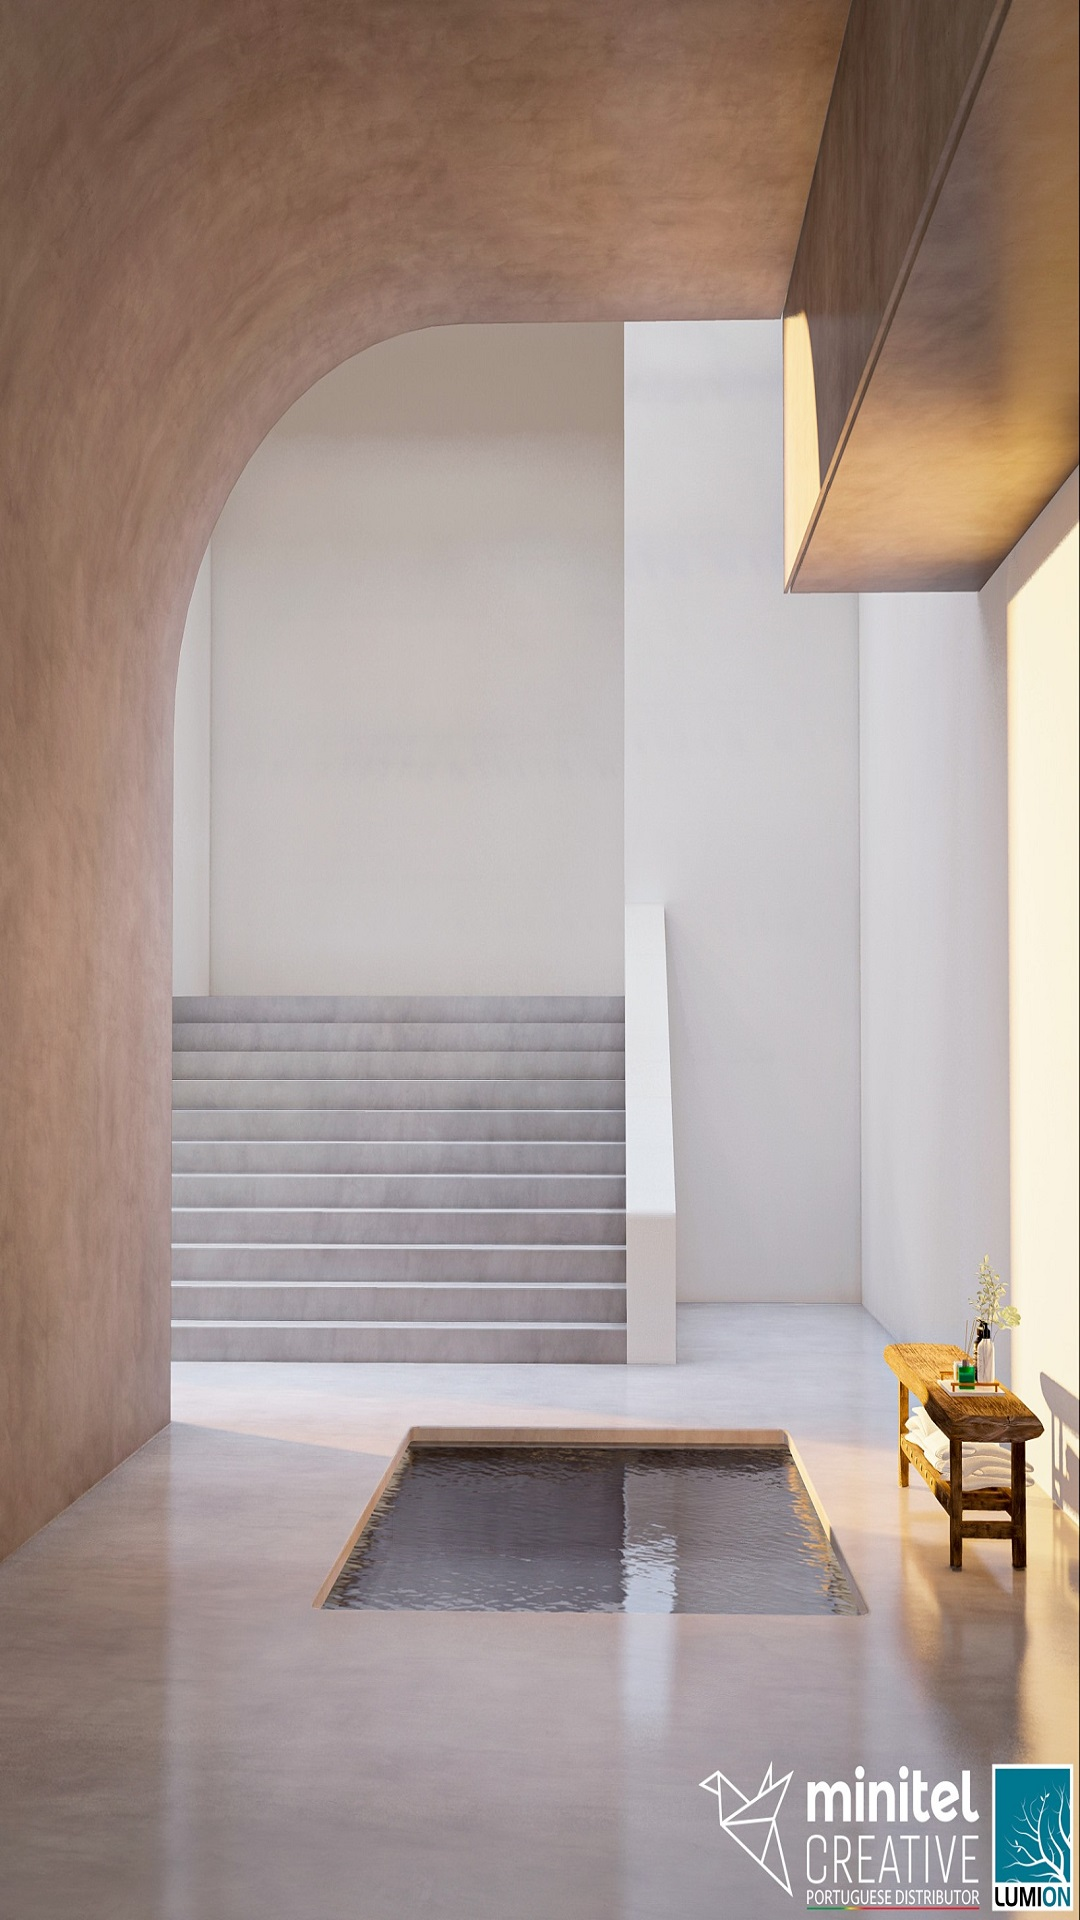 Inspiration (layers and shapes of a hidden bath area), rendered in Lumion 11 by Minitel Creative.